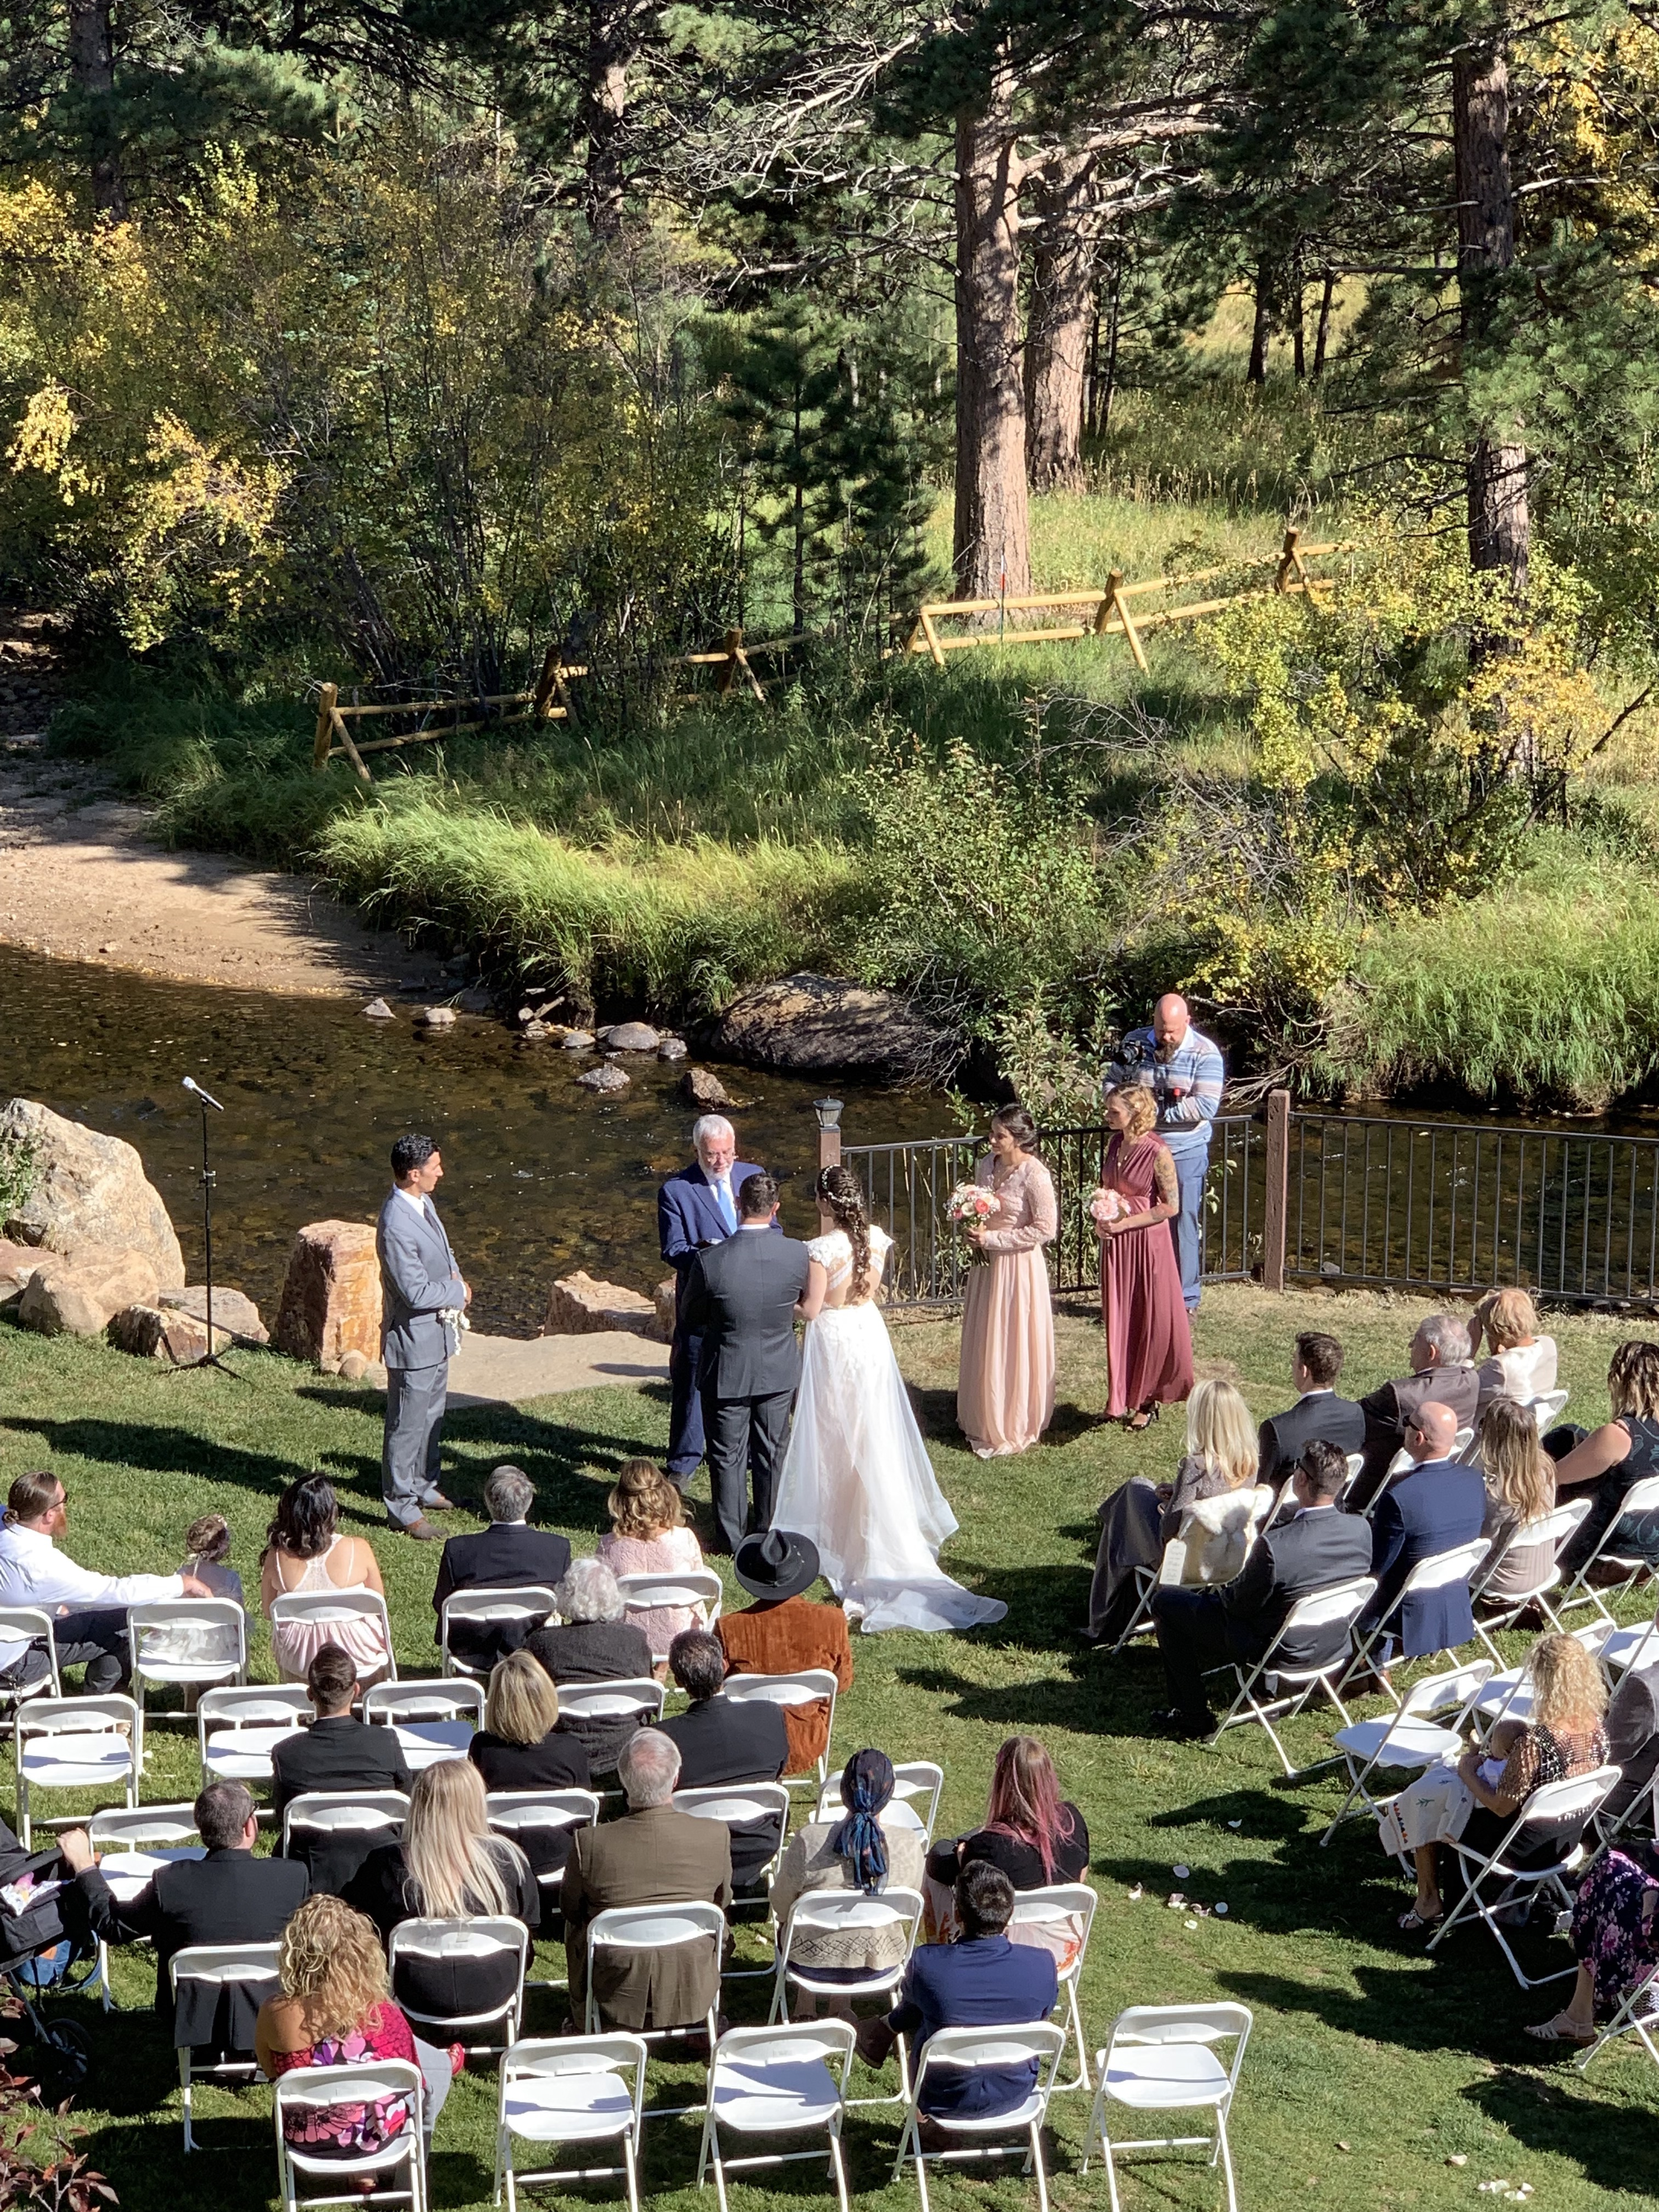 events & attractions WEDDINGS & EVENTS IMG 2127 2